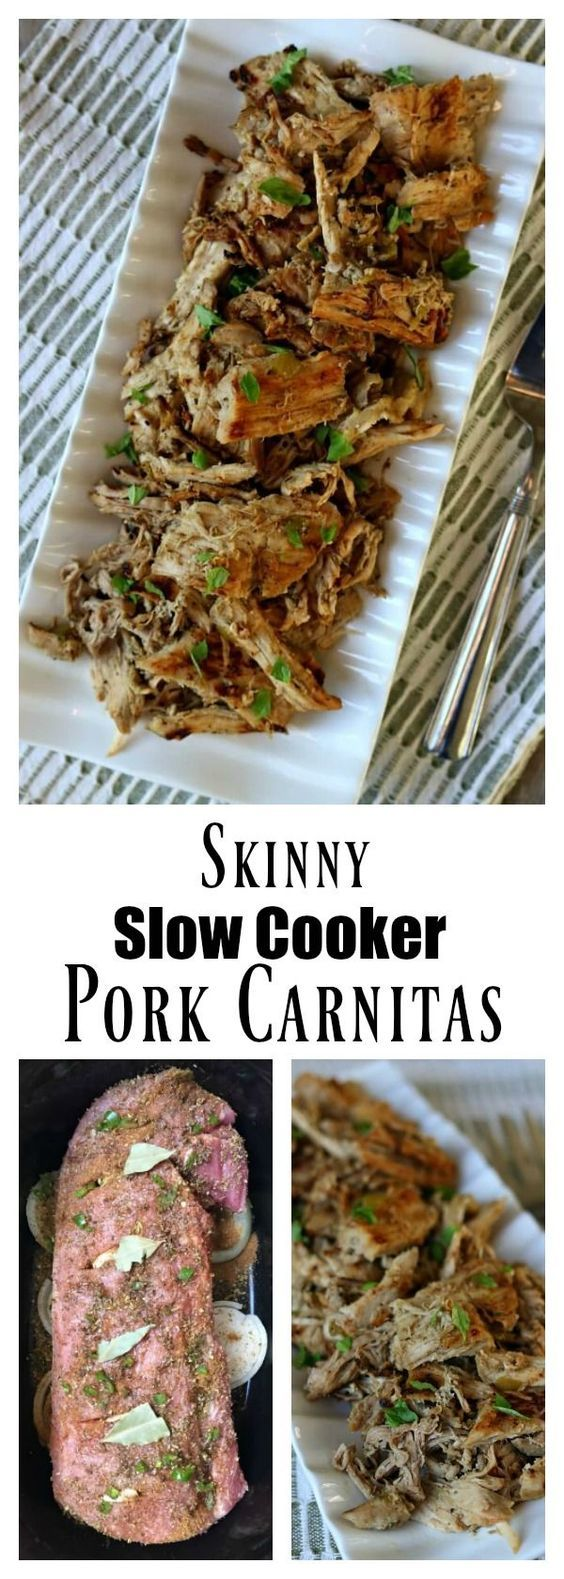 Skinny Slow Cooker Pork Carnitas: lean pork cooked in your slow cooker with onion, garlic, jalapeno, and lots of spices. Then the pork is crisped up on the stove top in a little olive oil creating maximum flavor for tacos, salads, burritos, nachos and enchiladas.